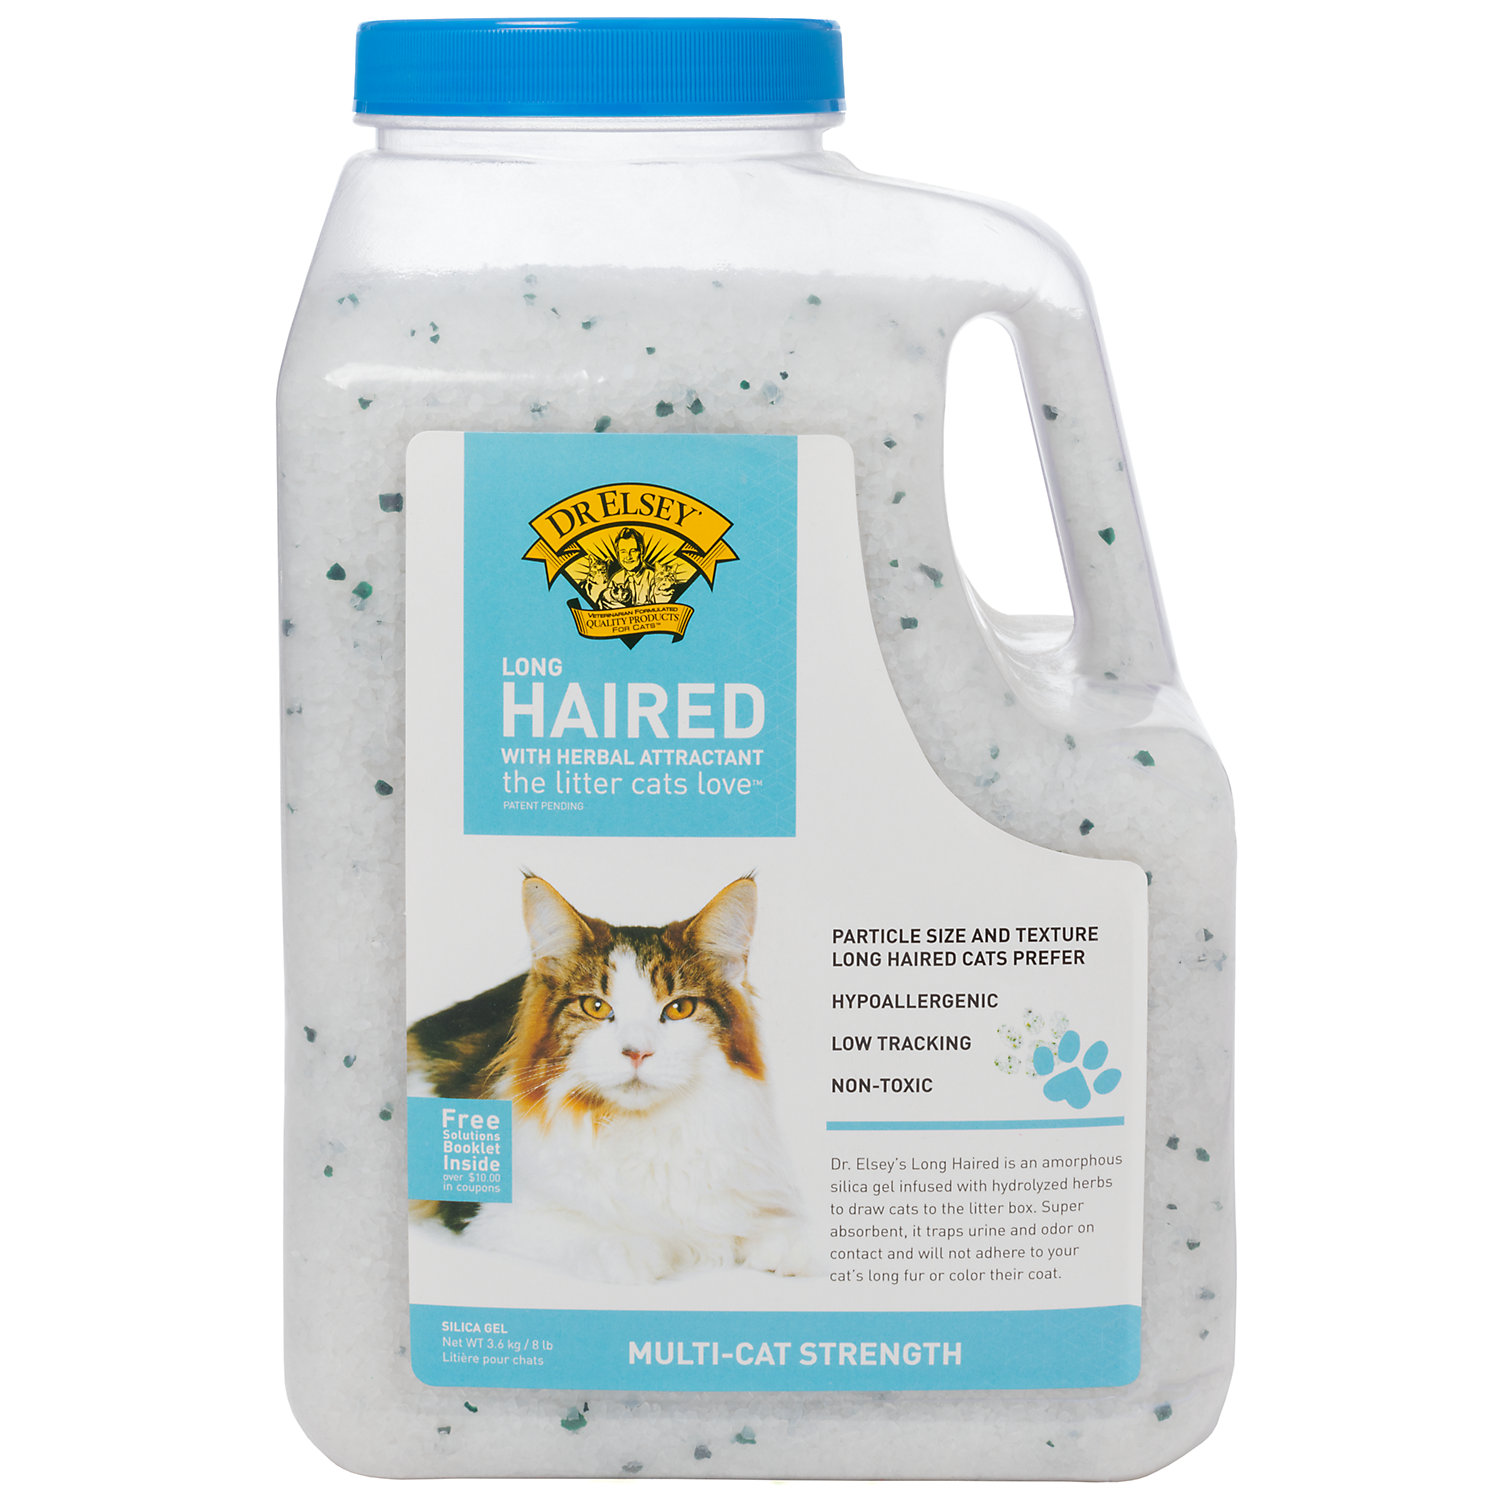 Precious Cat Dr. Elseys Long Haired Cat Litter 8 Lbs.